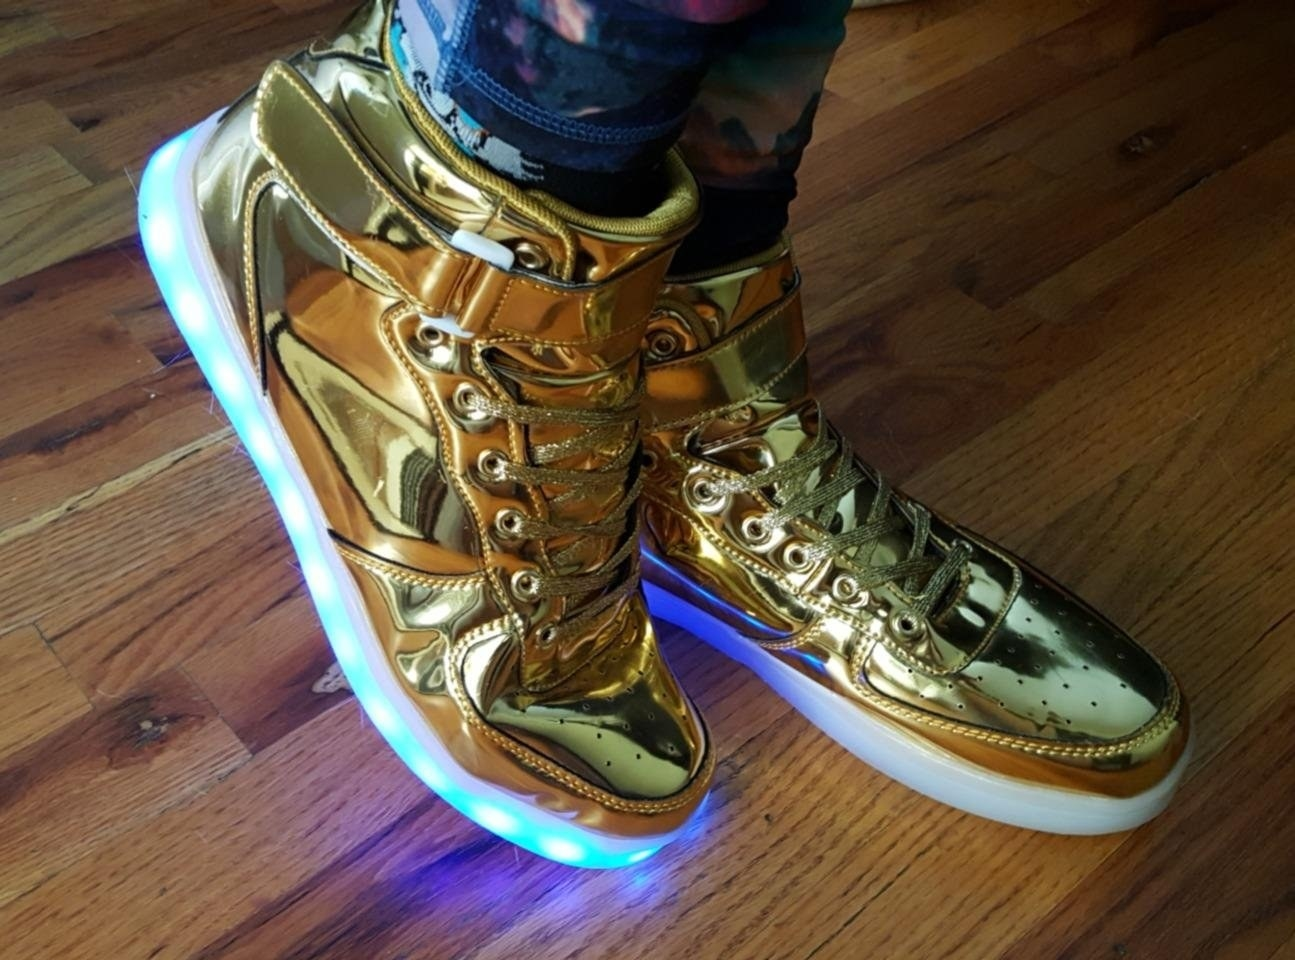 Reviewer wearing the high-top sneakers in shiny gold with a stripe of LED lights around the sole